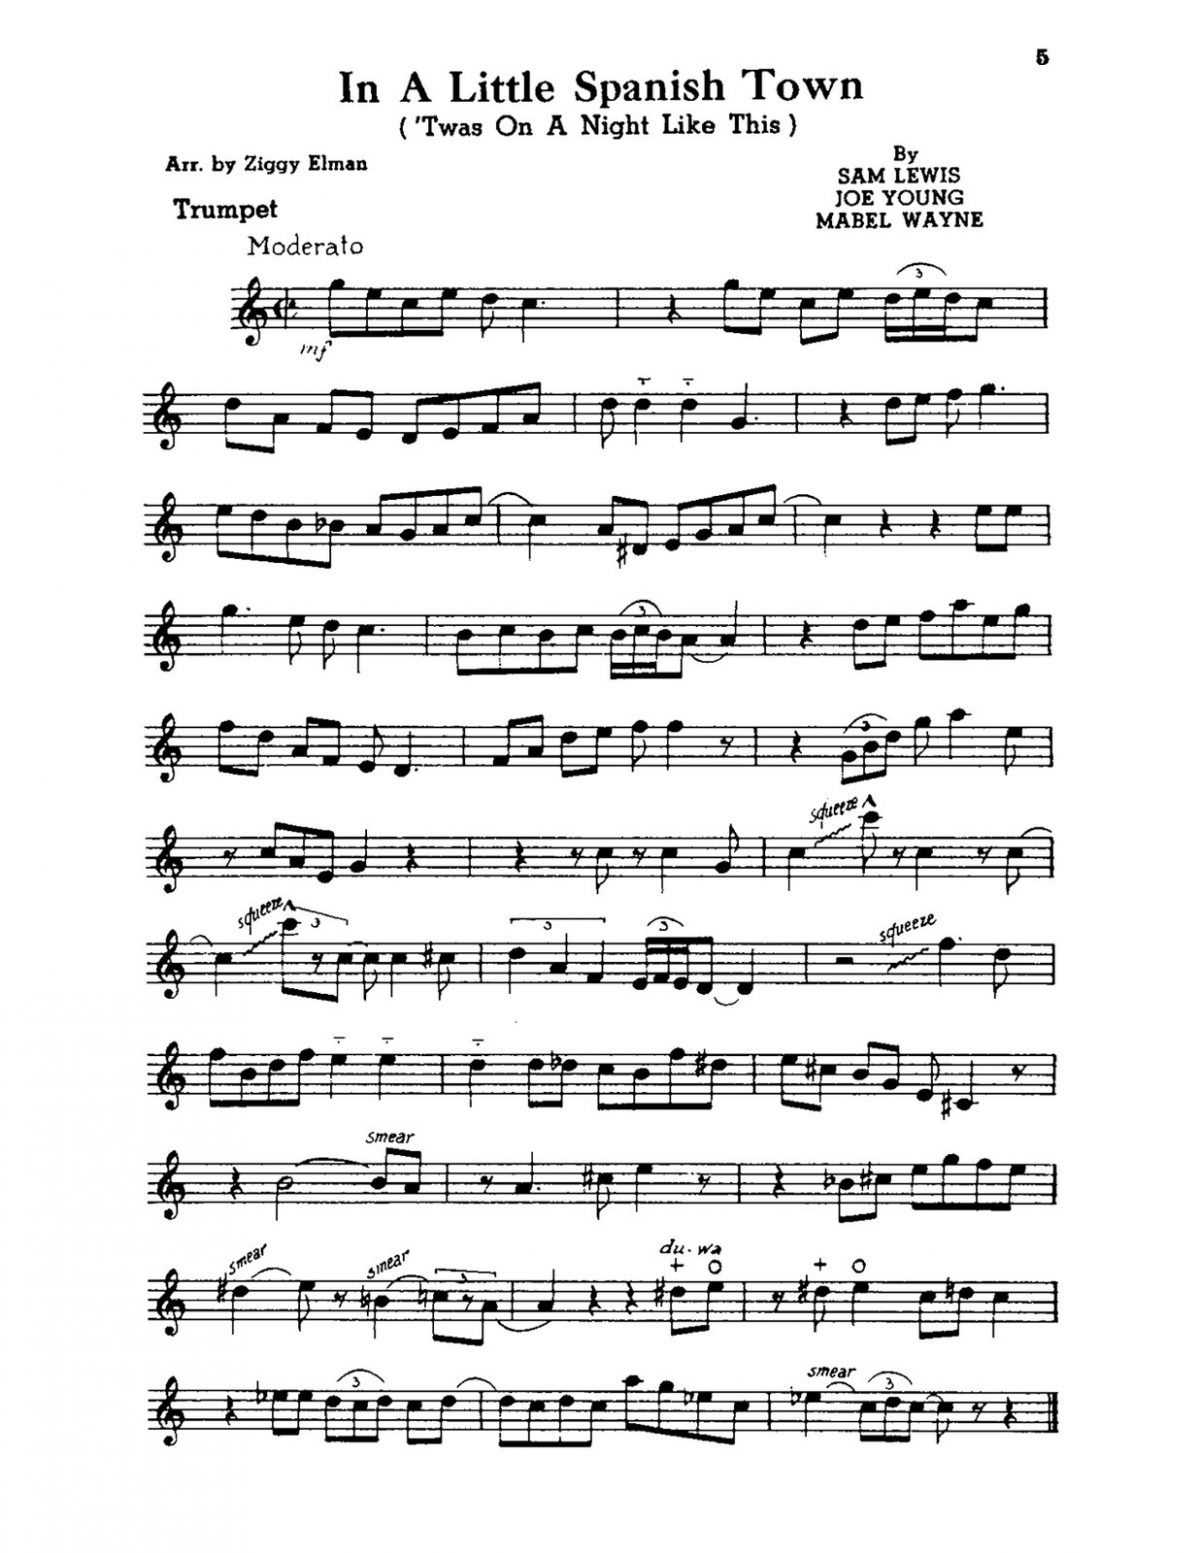 Elman, All Star Series Modern Rhythm Choruses for Trumpet-p07